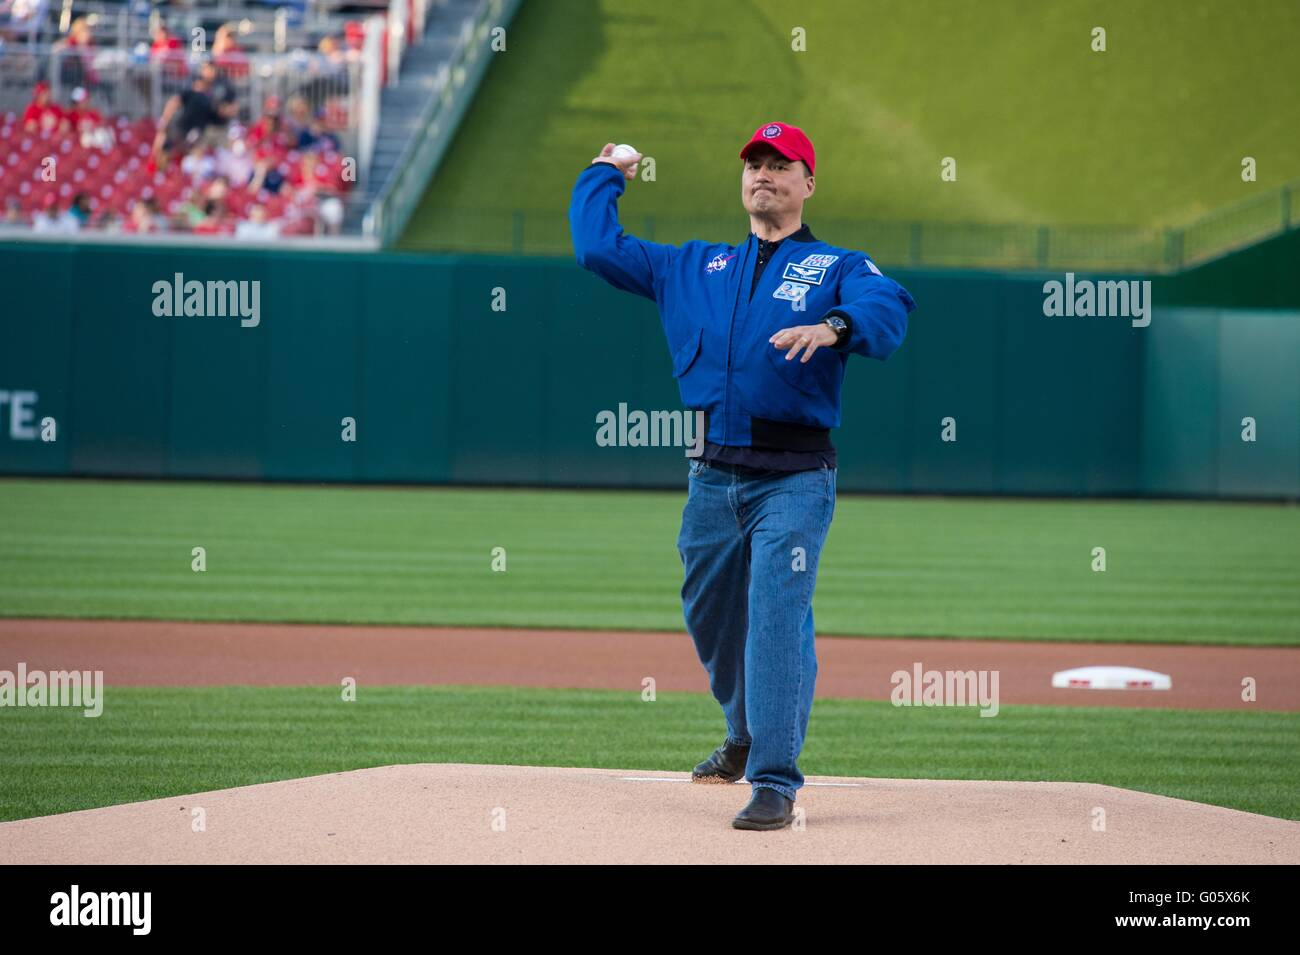 NASA astronaut Kjell Lindgren throws out the ceremonial first pitch before the Washington Nationals take on the - Stock Image